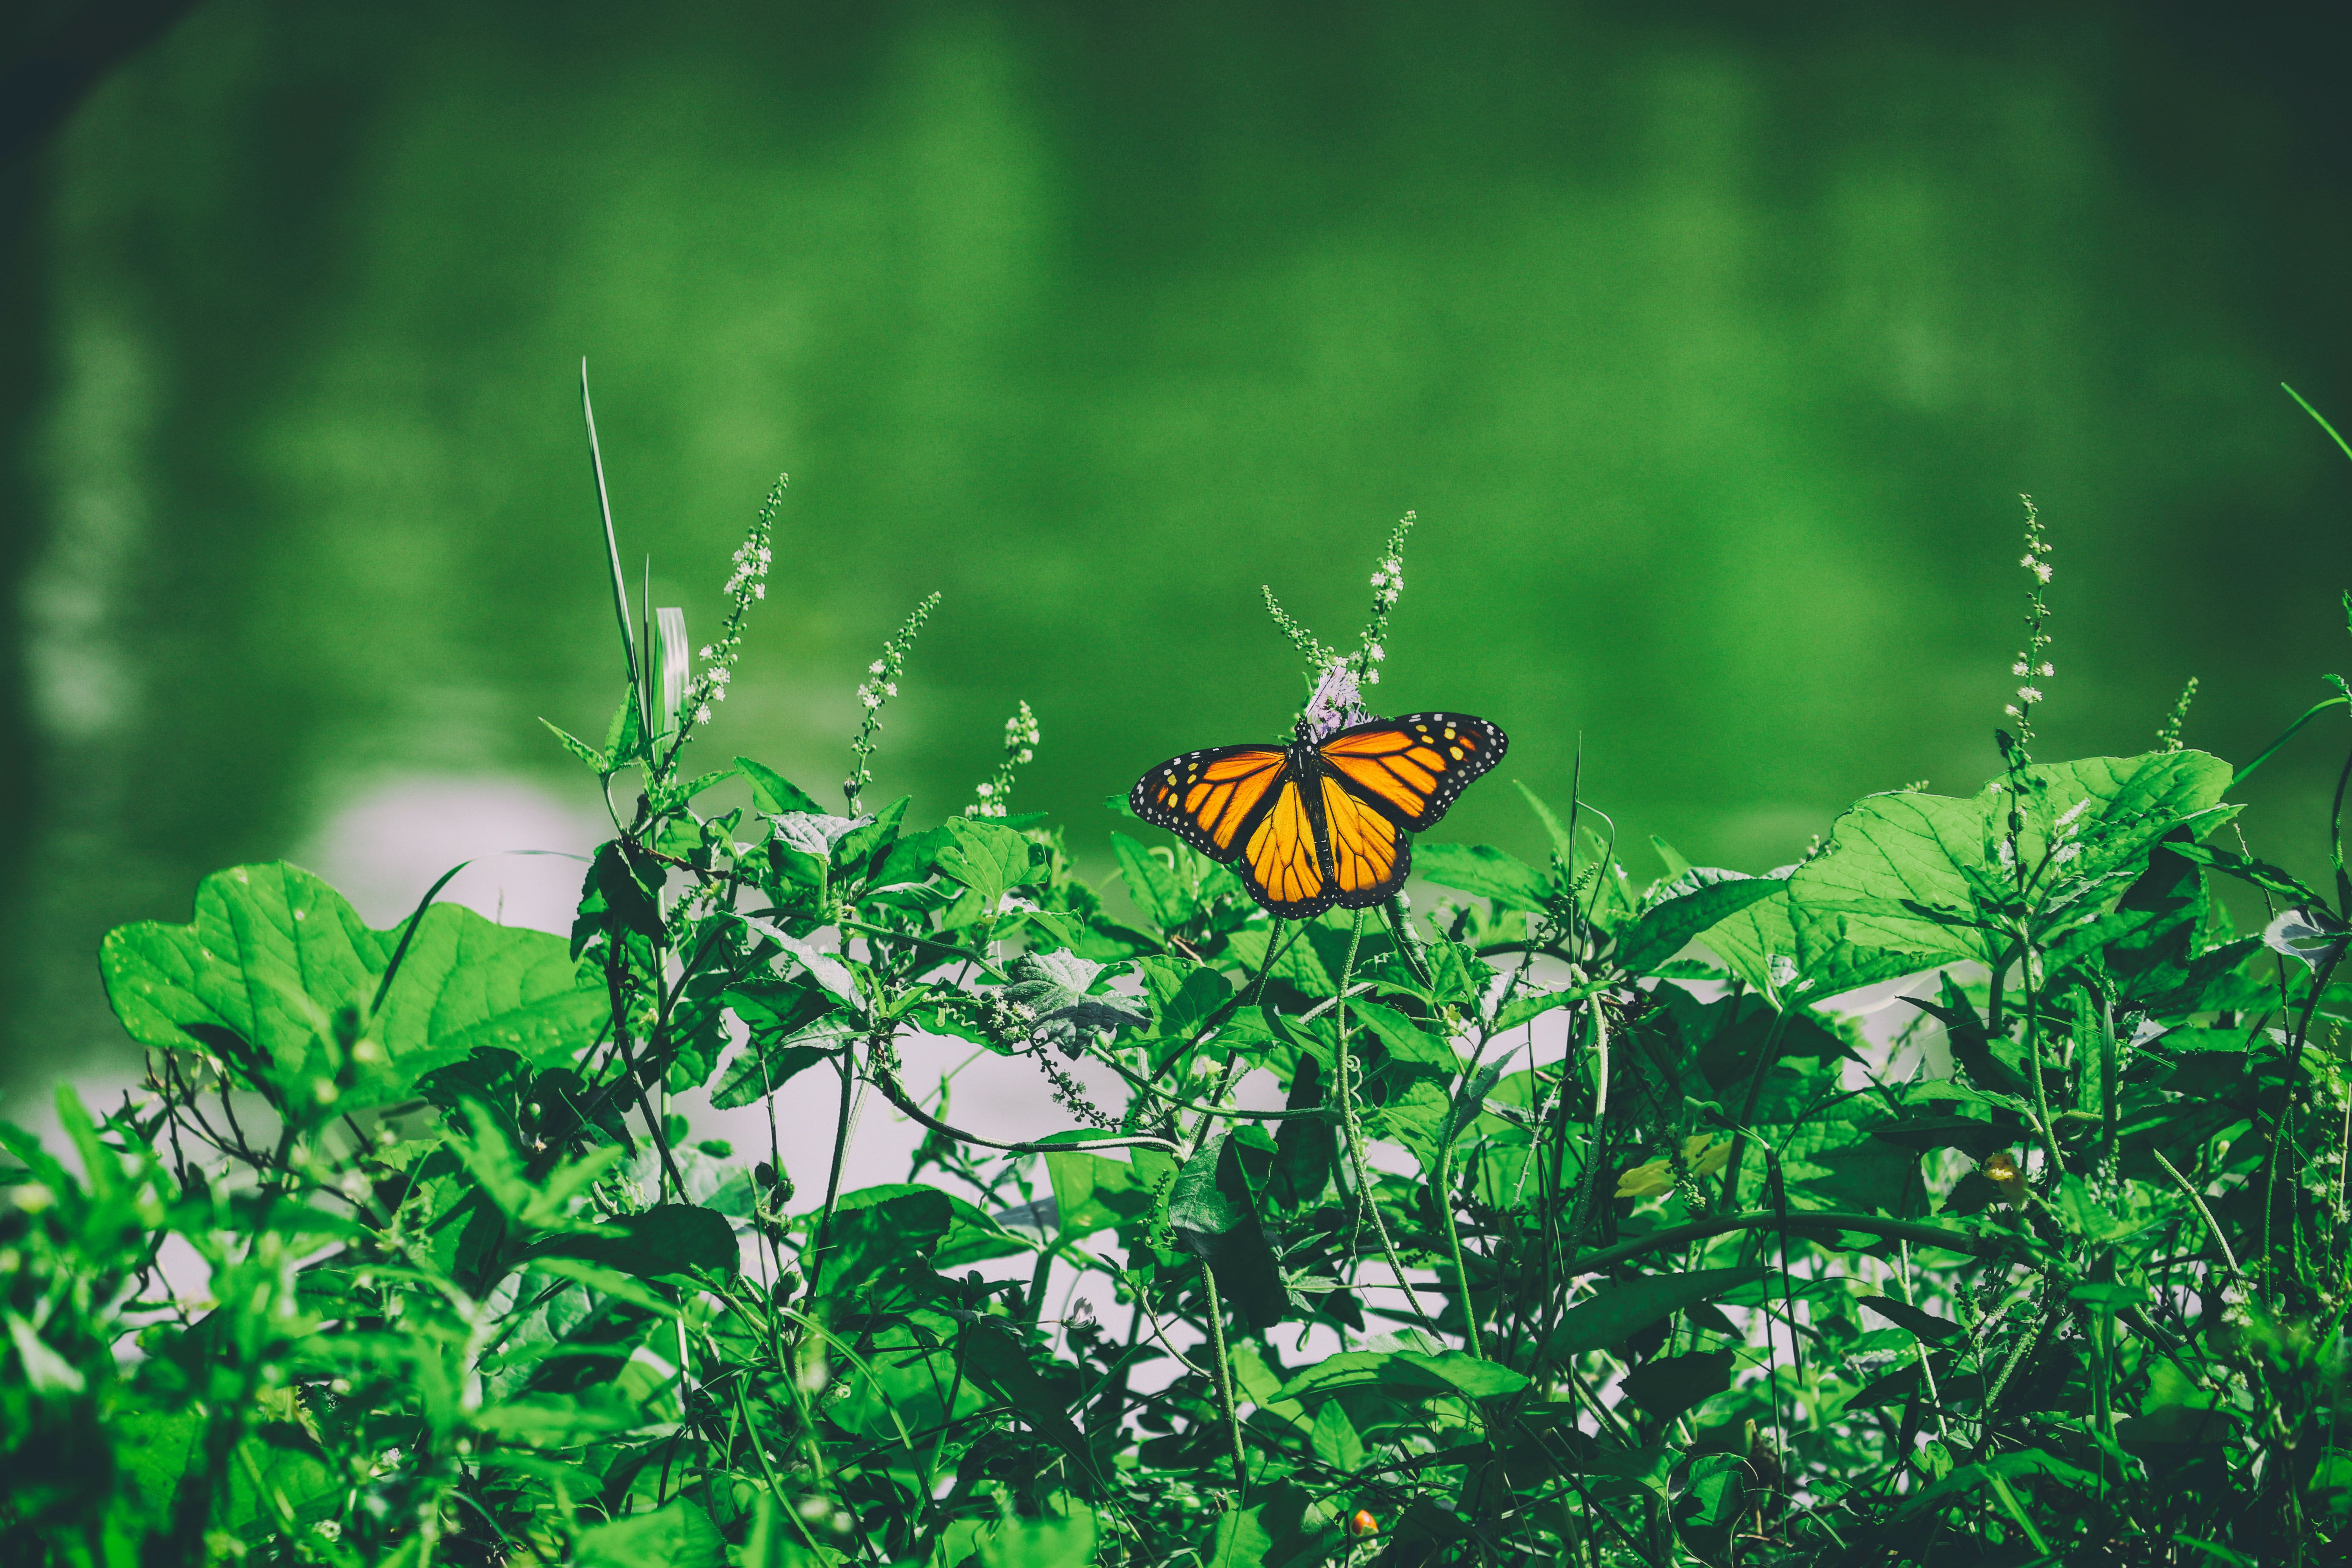 Green Leafed Plant and Butterfly